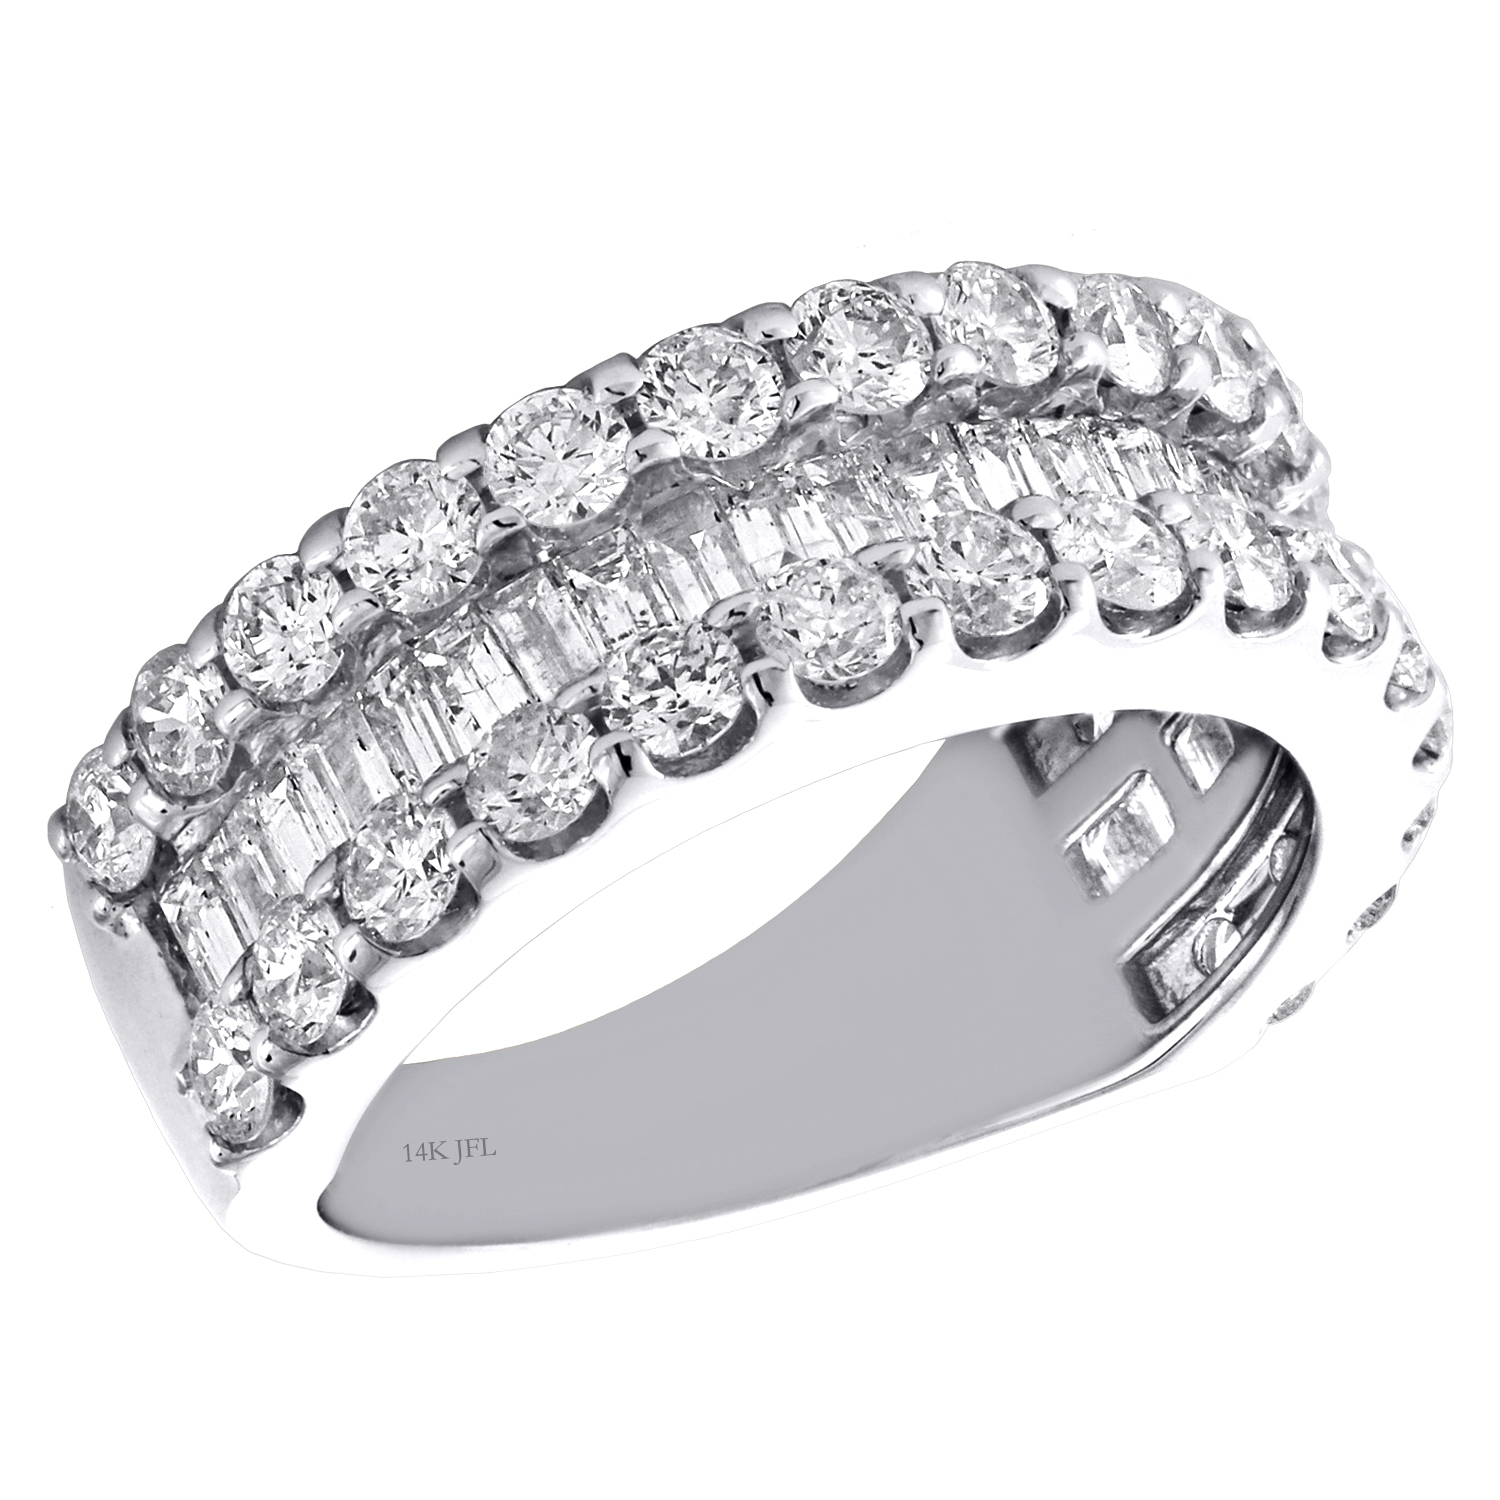 Details About 14K White Gold Tapered Baguette Round Diamond 3 Row Women's  Wedding Band  (View 15 of 25)